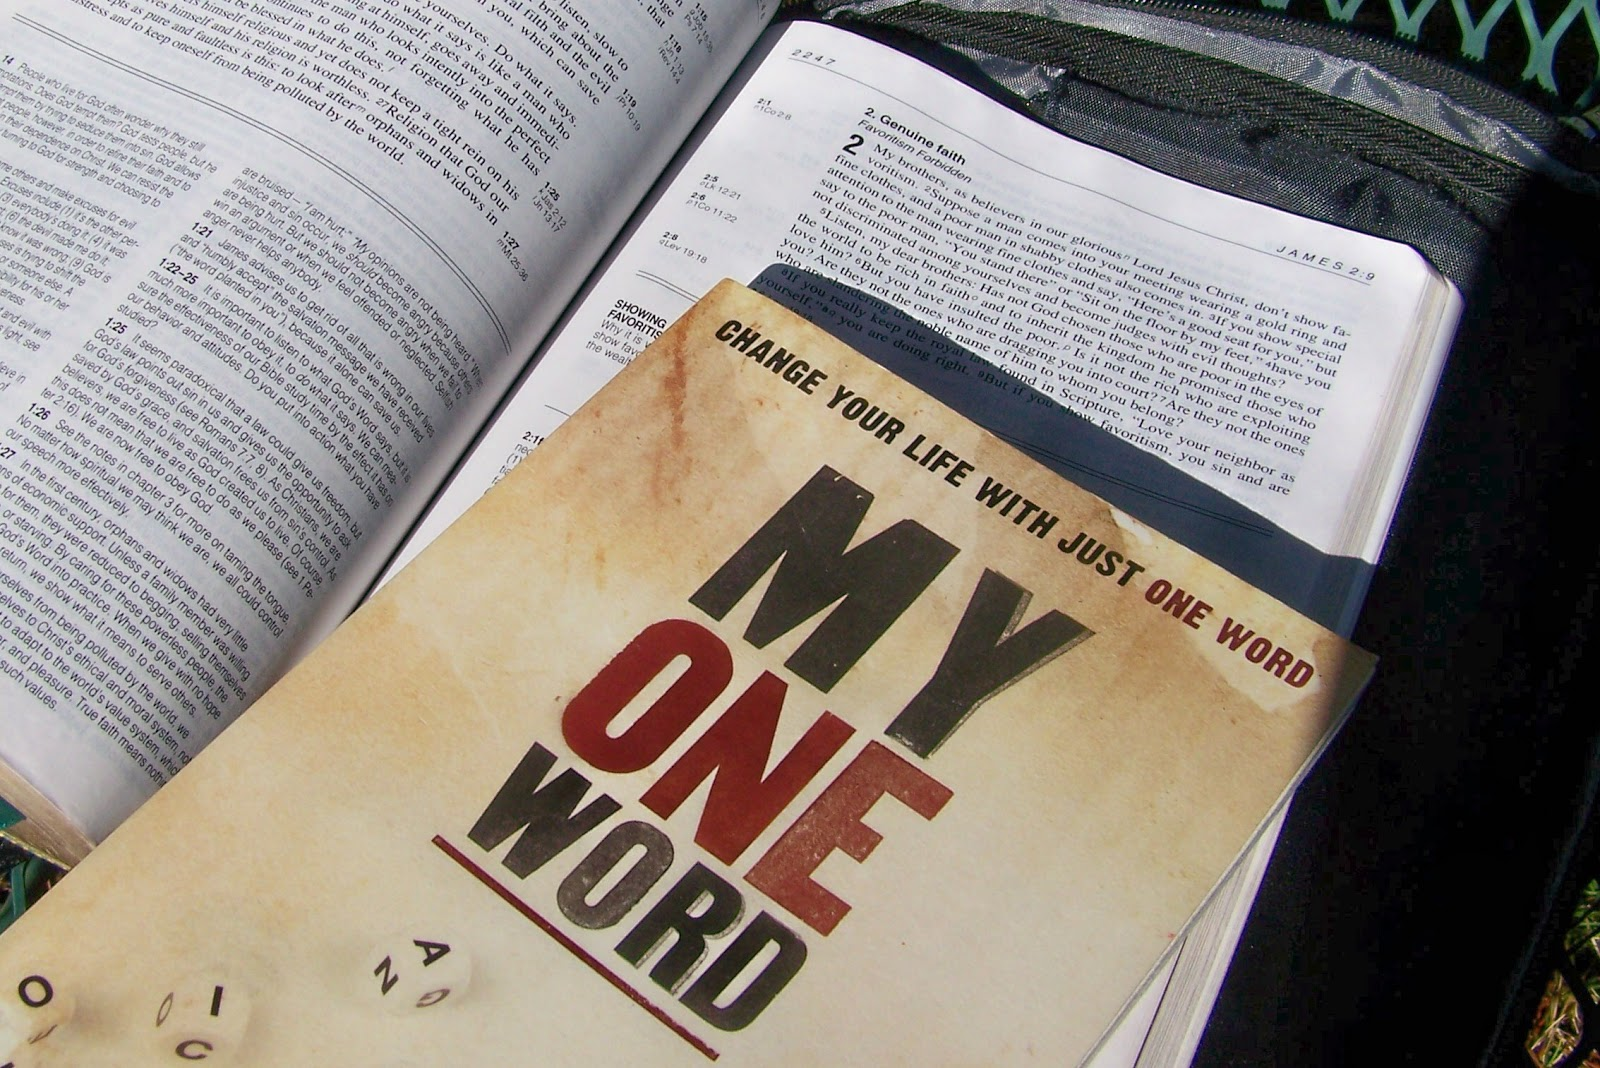 my one word book with bible